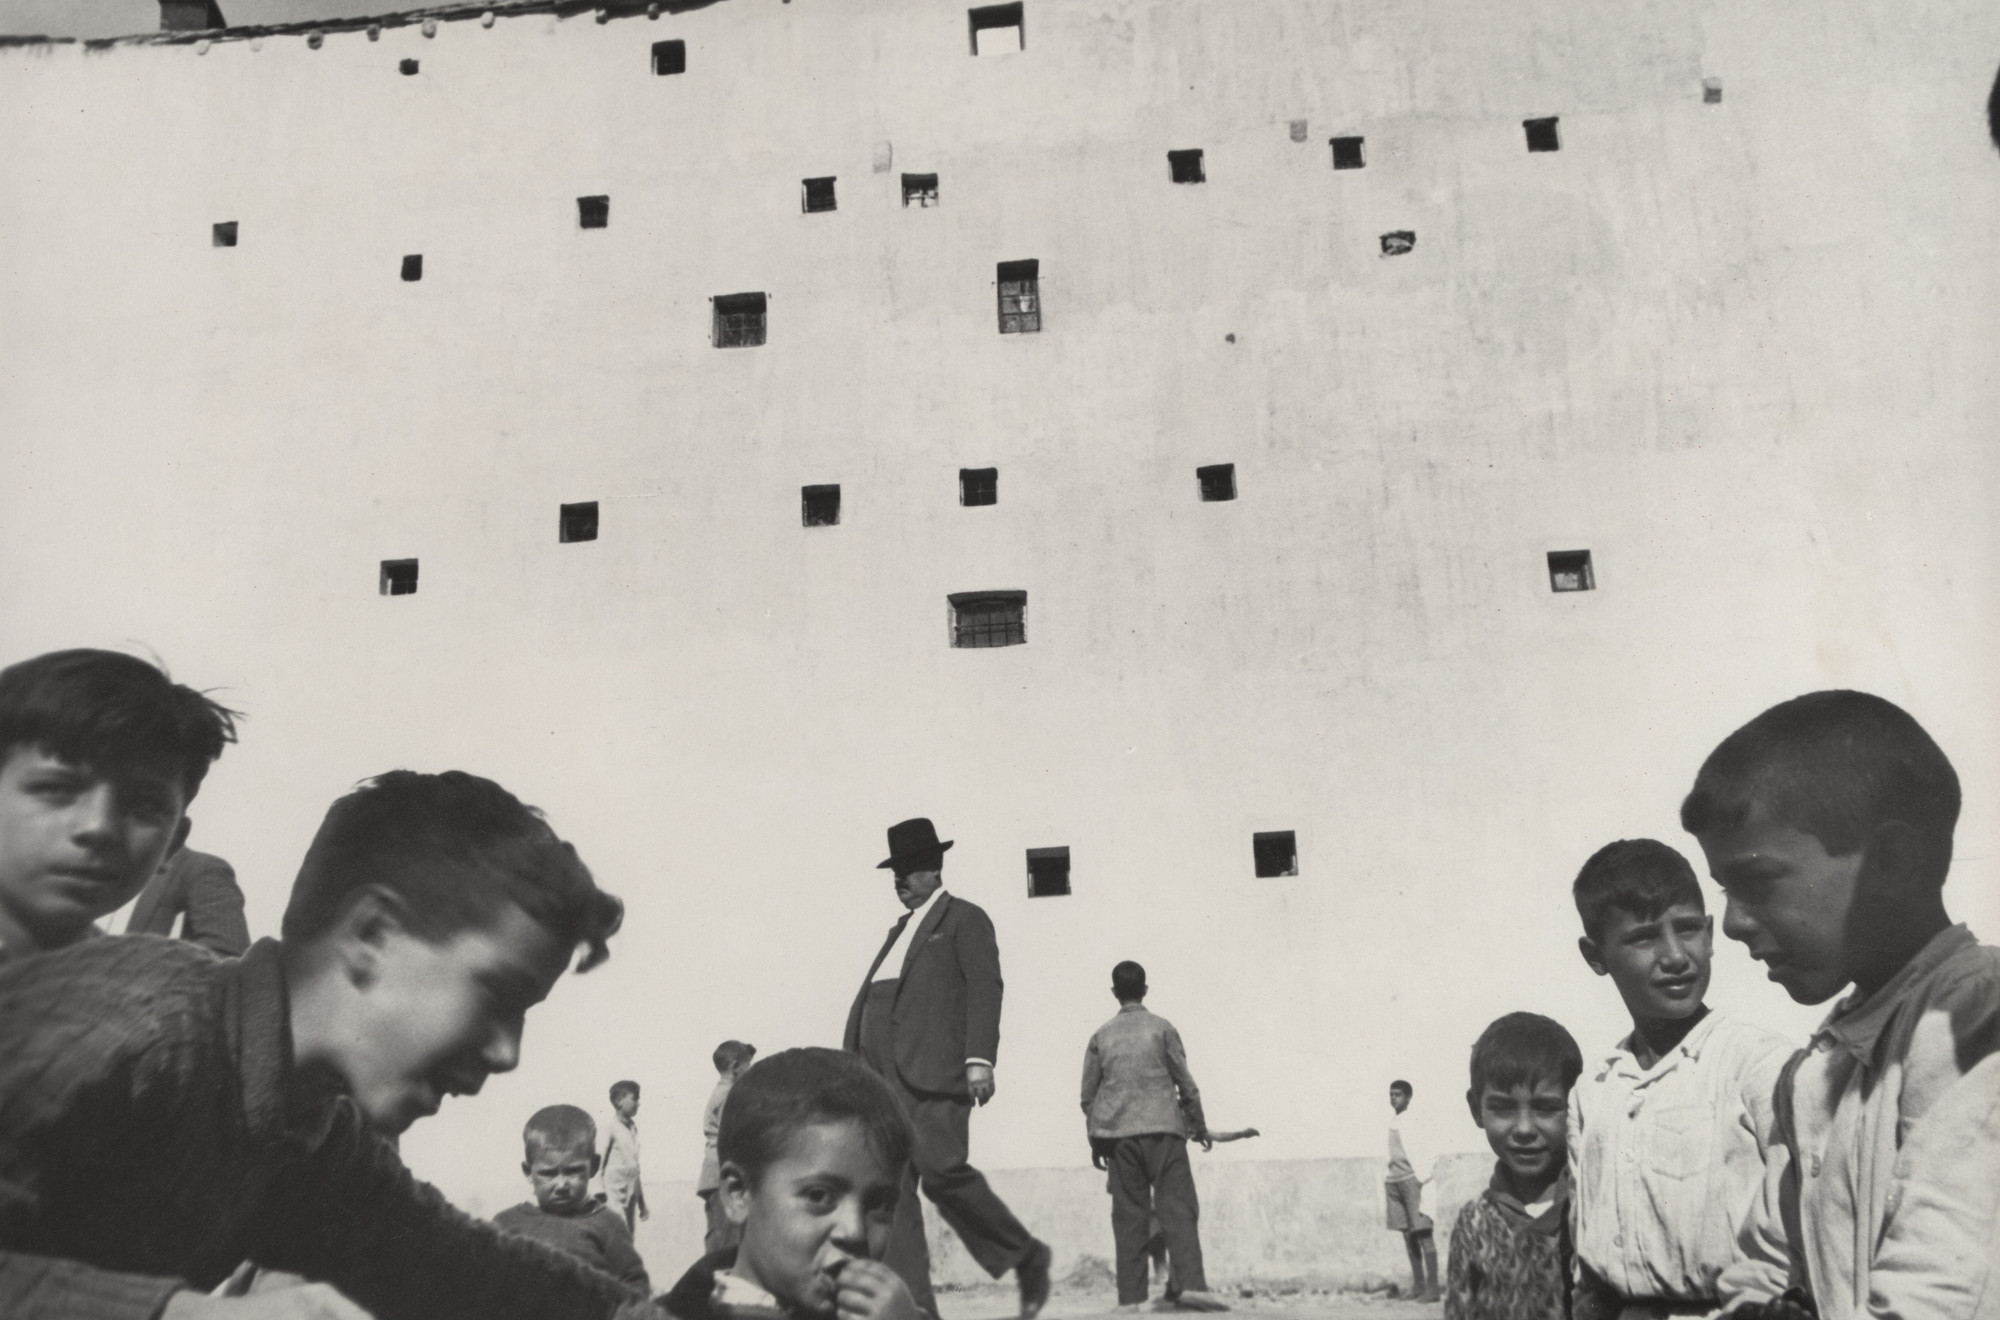 Henri Cartier-Bresson. Madrid. 1933